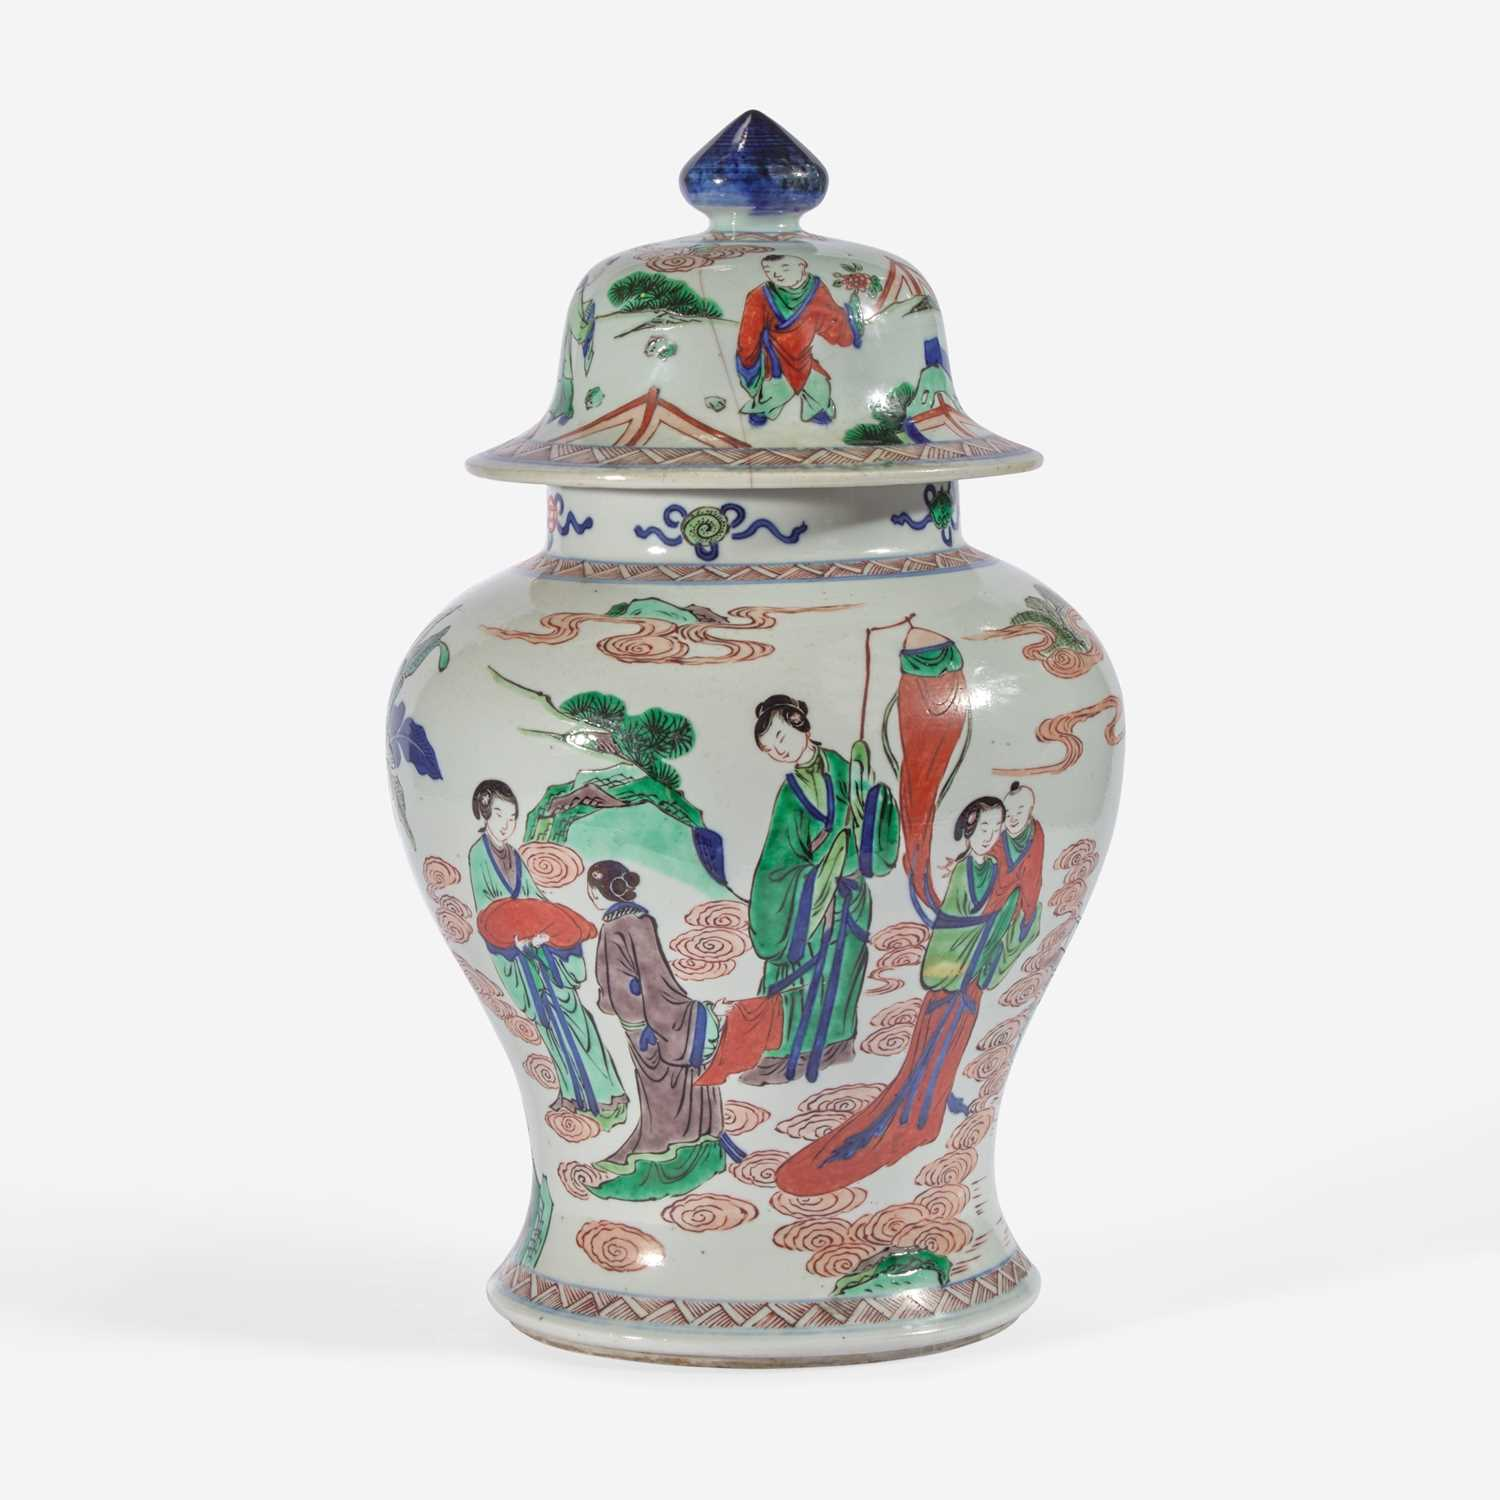 Lot 98 - A Chinese wucai-decorated porcelain jar and cover 五彩盖罐